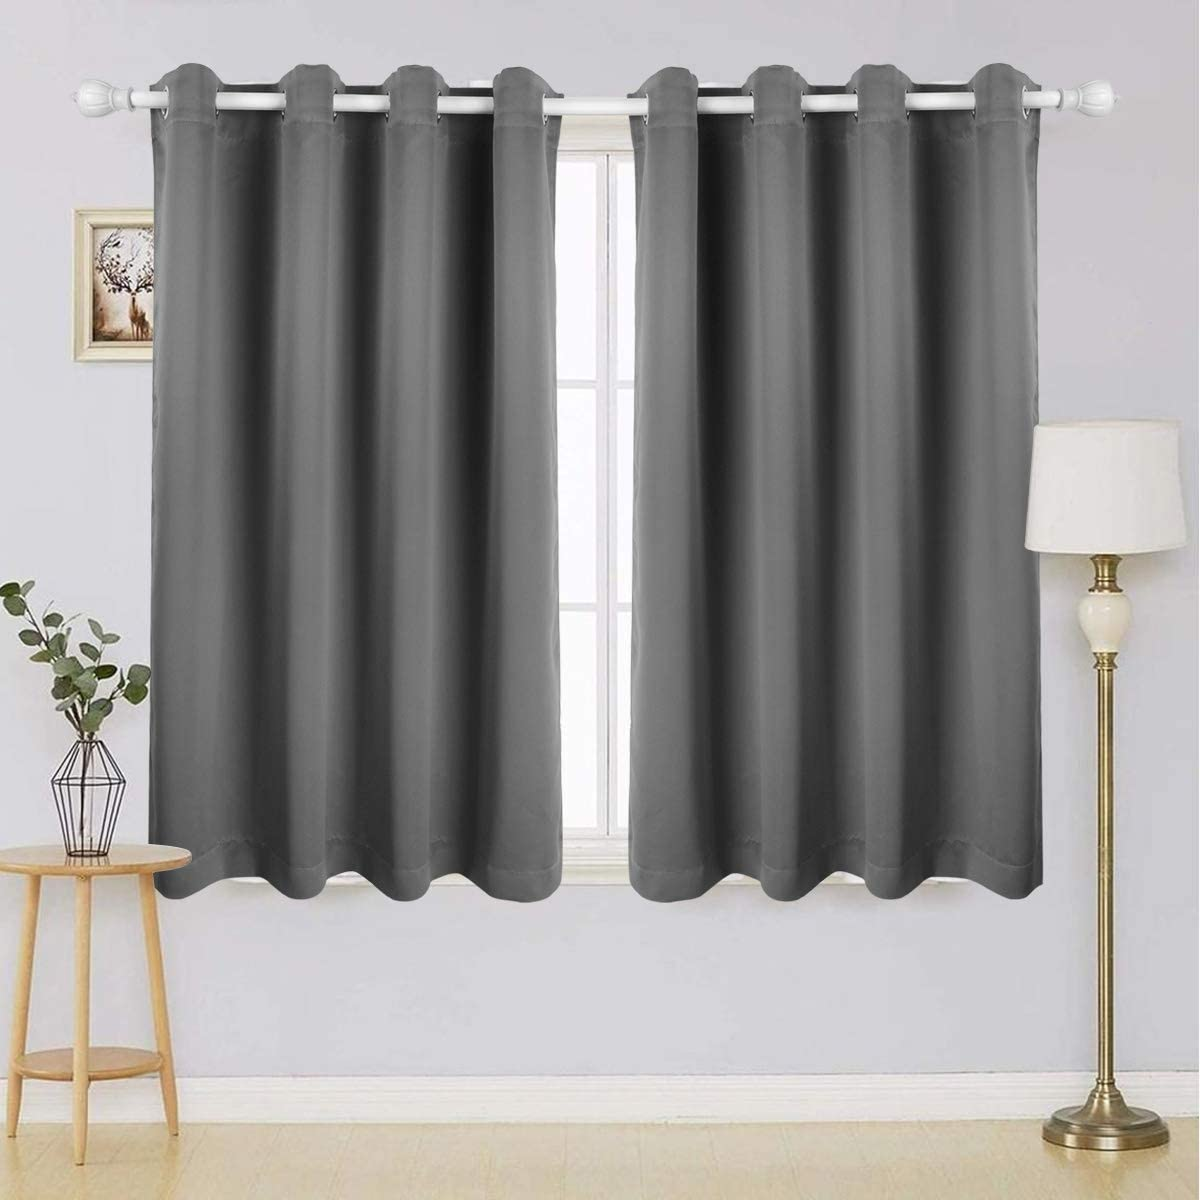 Anmon Blackout Curtains for Bedroom – Thermal Insulated Blackout Curtain Panels Grommet Blackout Draperies Room Darkening Curtains for Living Room, Set of 2 Panels 52×63 Inch Grey